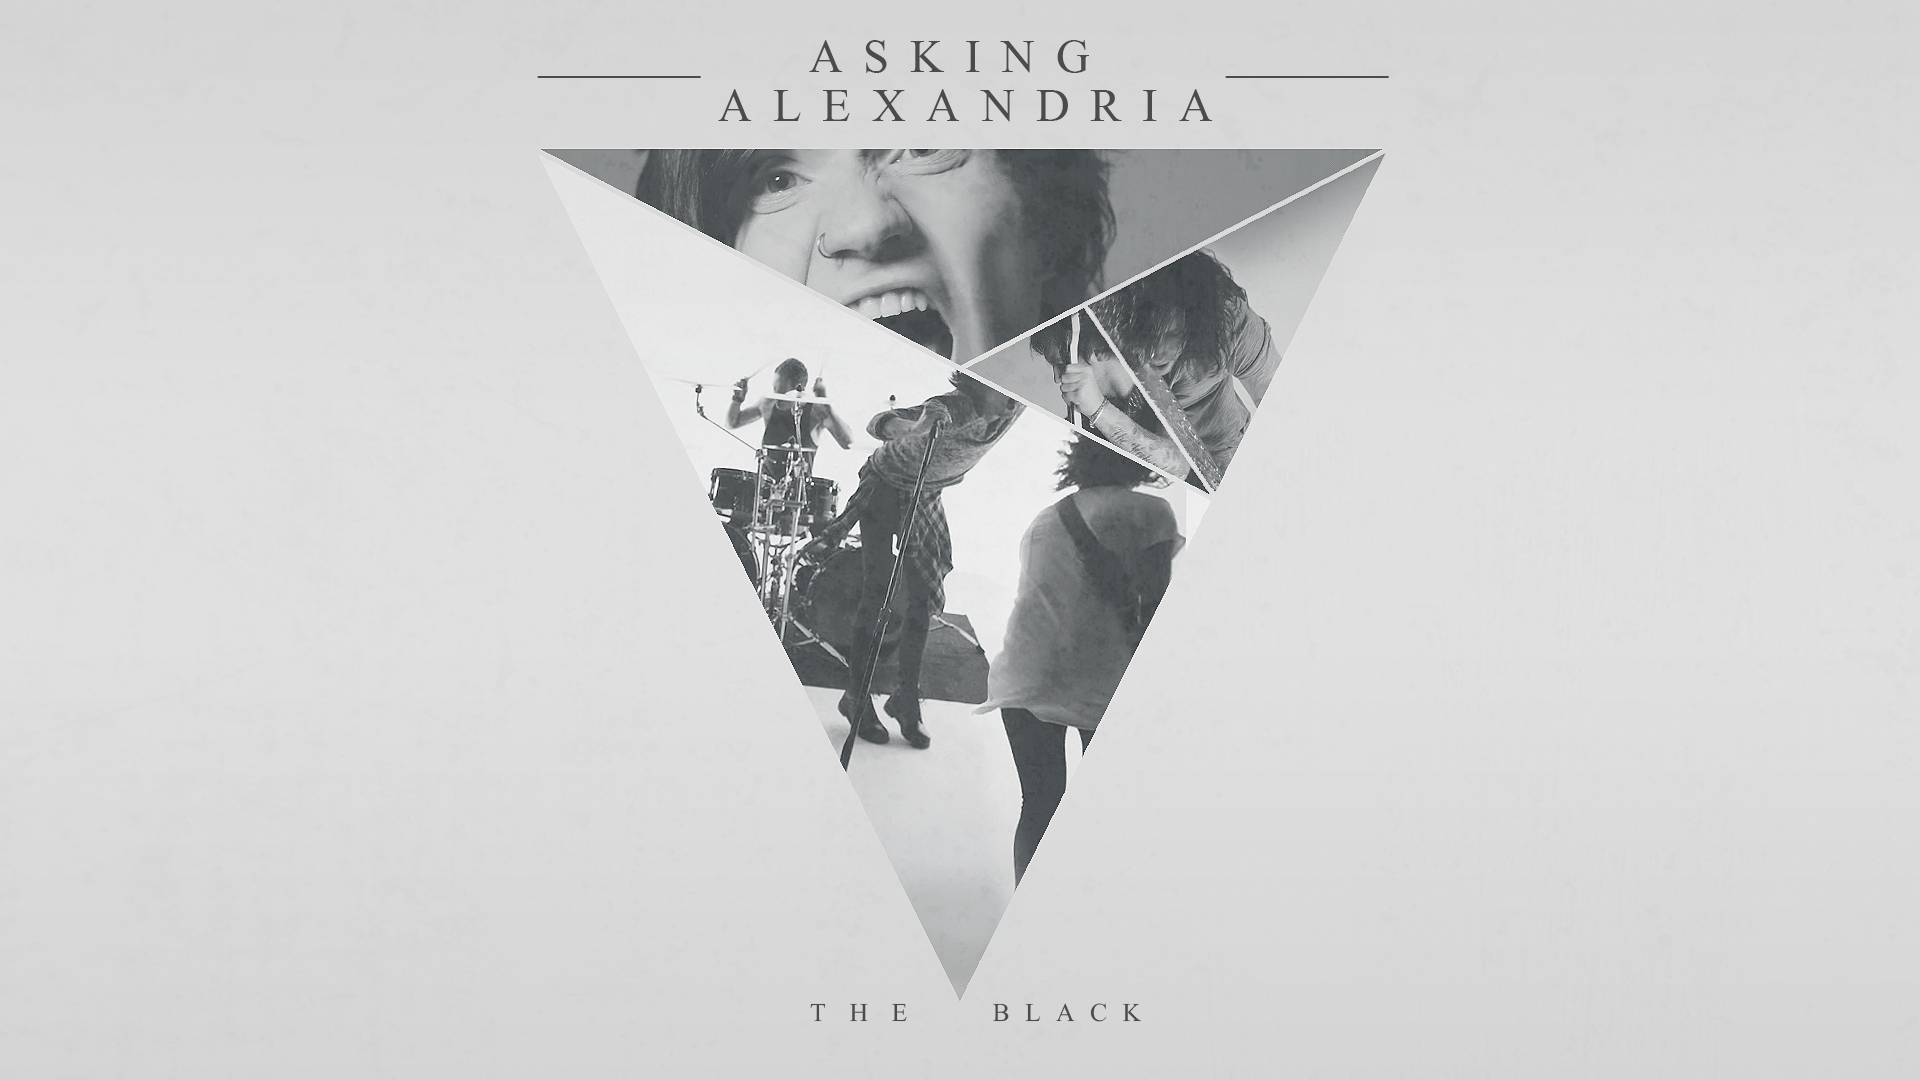 Asking Alexandria The Black Wall by thepariah6 on DeviantArt: thepariah6.deviantart.com/art/Asking-Alexandria-The-Black-Wall...